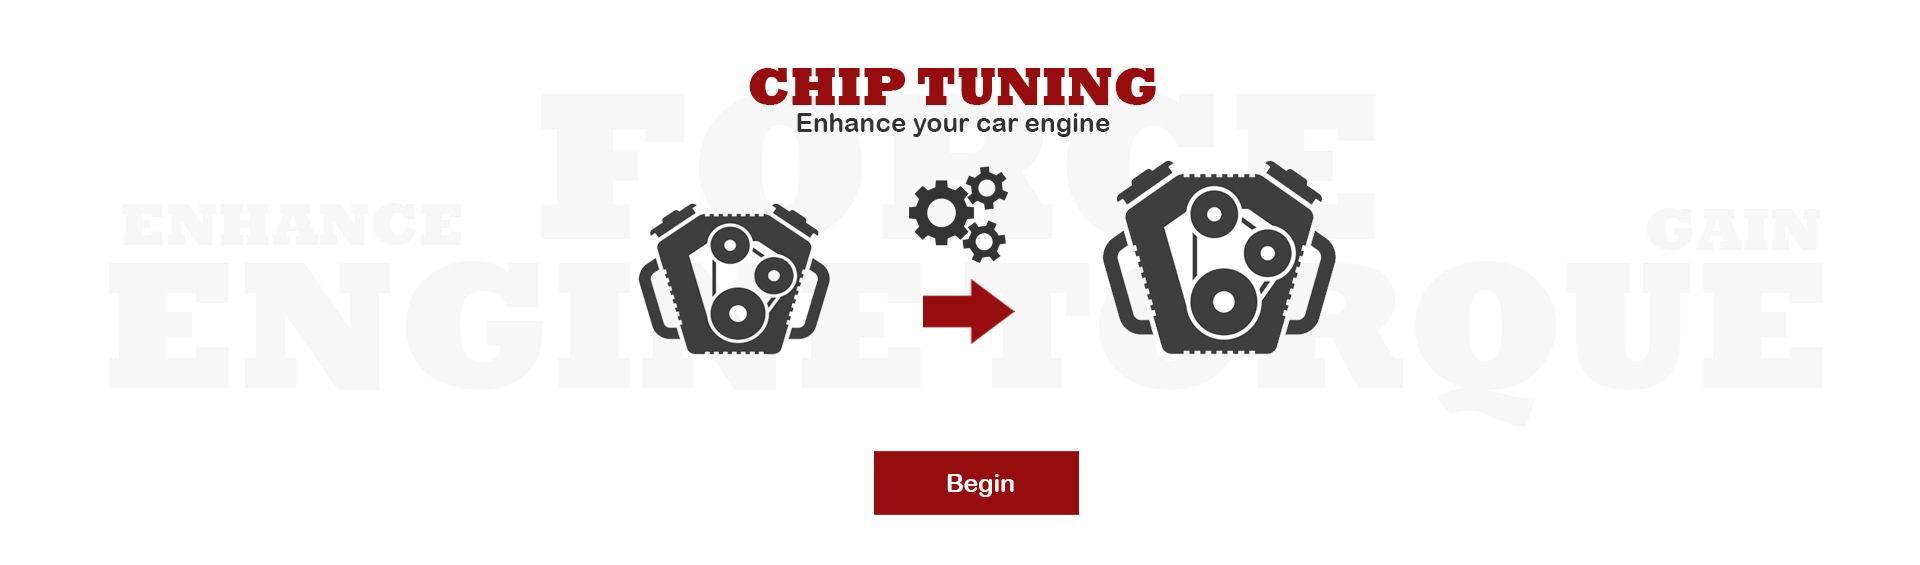 chip tuning file